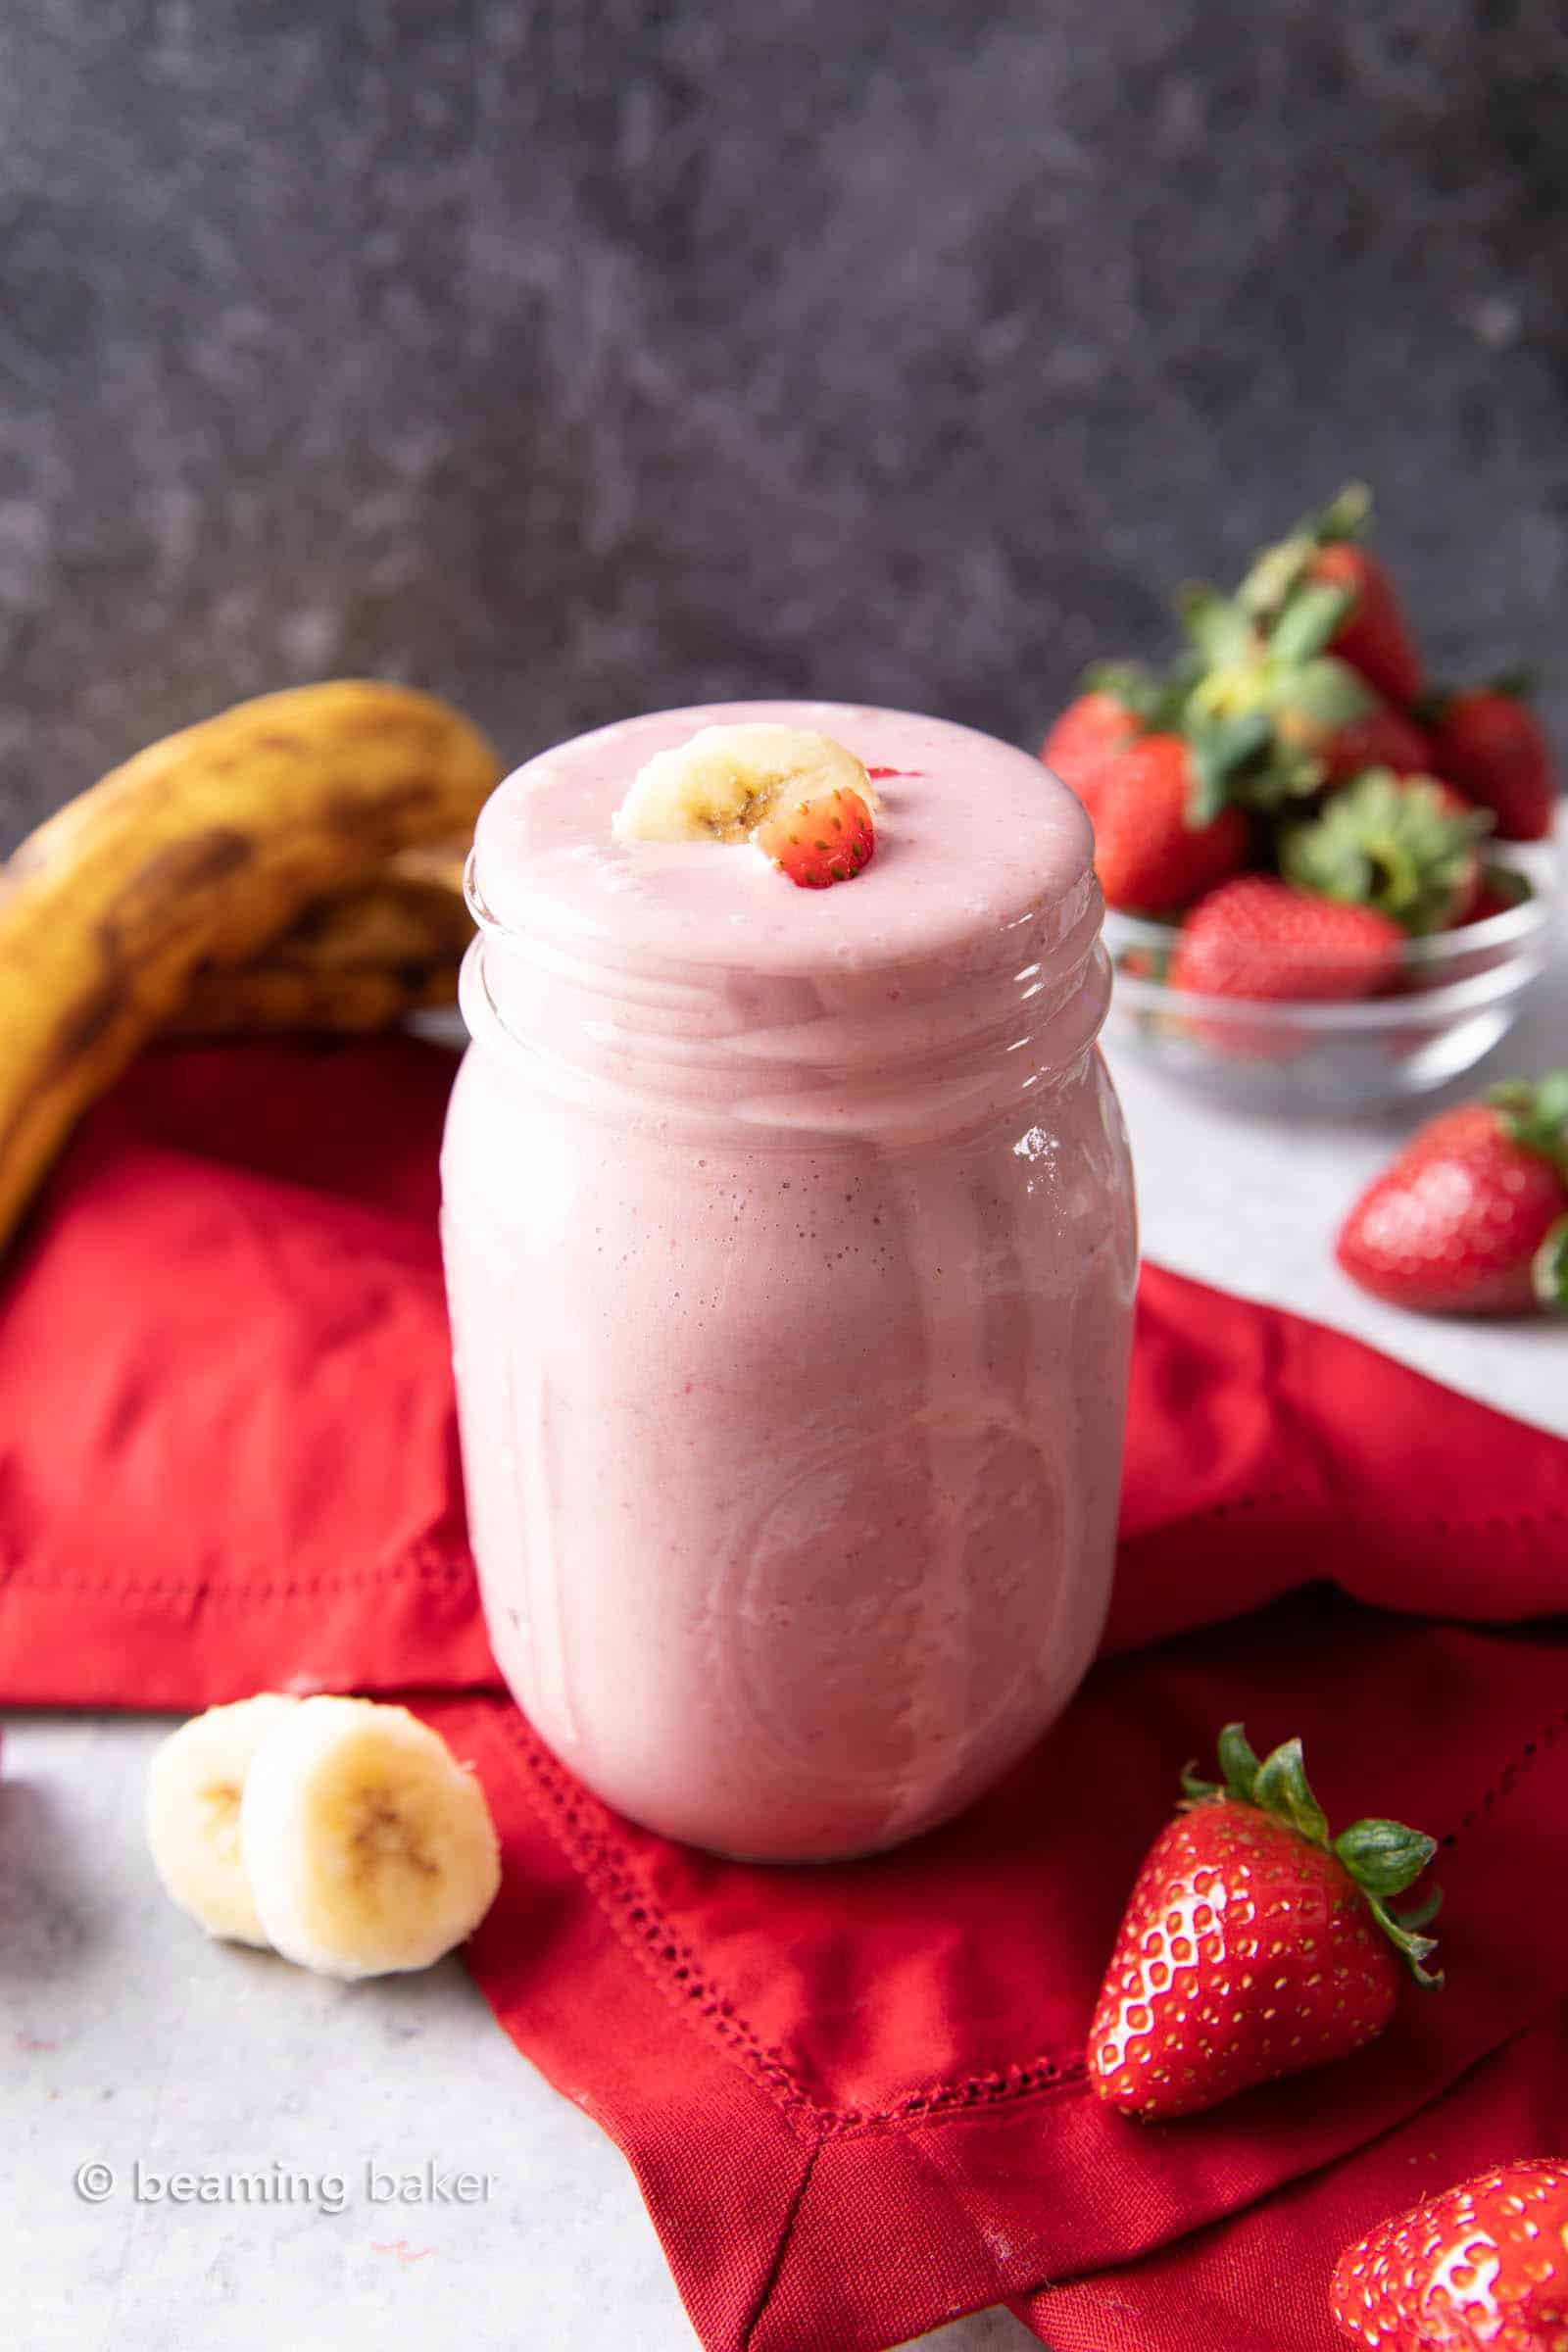 Strawberry Banana Smoothie Recipe: learn how to make a strawberry banana smoothie with 3 ingredients! Smooth, creamy and refreshing! Healthy, Easy to Make, Simple Ingredients. #Strawberry #Smoothie #Banana #Recipe | Recipe at BeamingBaker.com